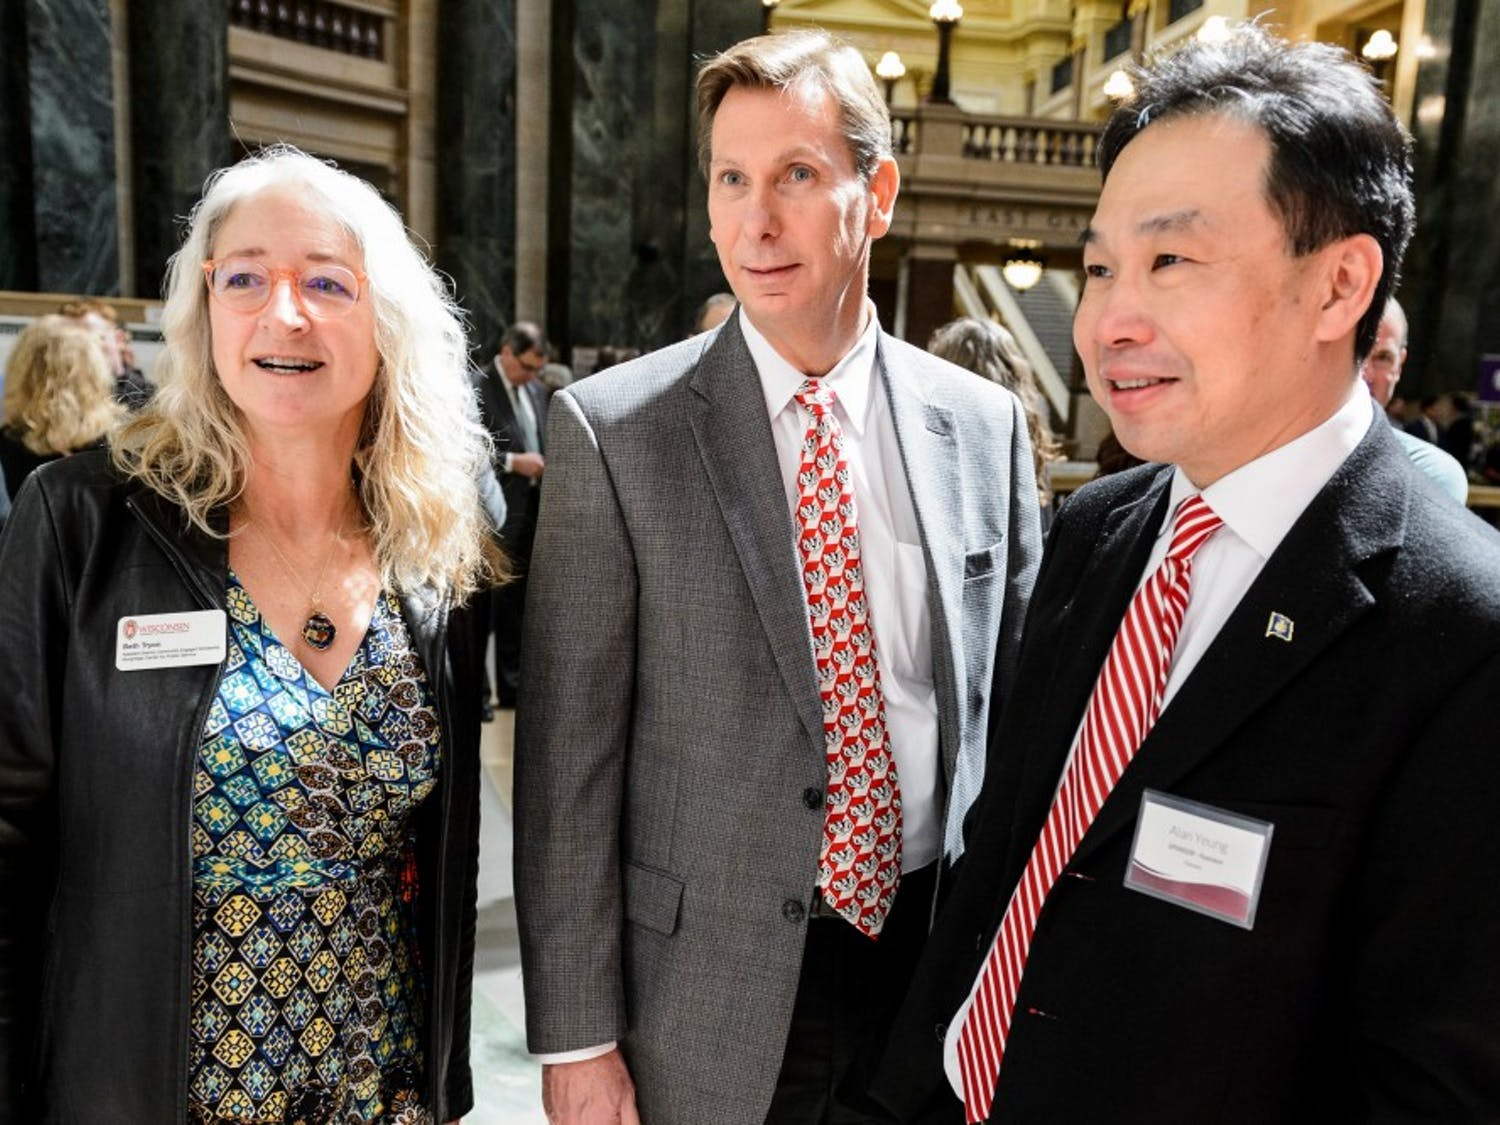 Pictured from left to right, Beth Tryon, assistant director with UW-Madison's Morgridge Center for Public Service; Charlie Hoslet, UW-Madison vice chancellor of university relations; and Alan Yeung, director of US Strategic Initiatives for Foxconn Technology Group, tour student research projects on display during Research in the Rotunda at the Wisconsin State Capitol on April 11, 2018. The outreach event provides students and faculty advisors from across the UW System with the opportunity to share their research findings with Wisconsin legislators, state leaders, UW alumni and members of the public. (Photo by Jeff Miller / UW-Madison)